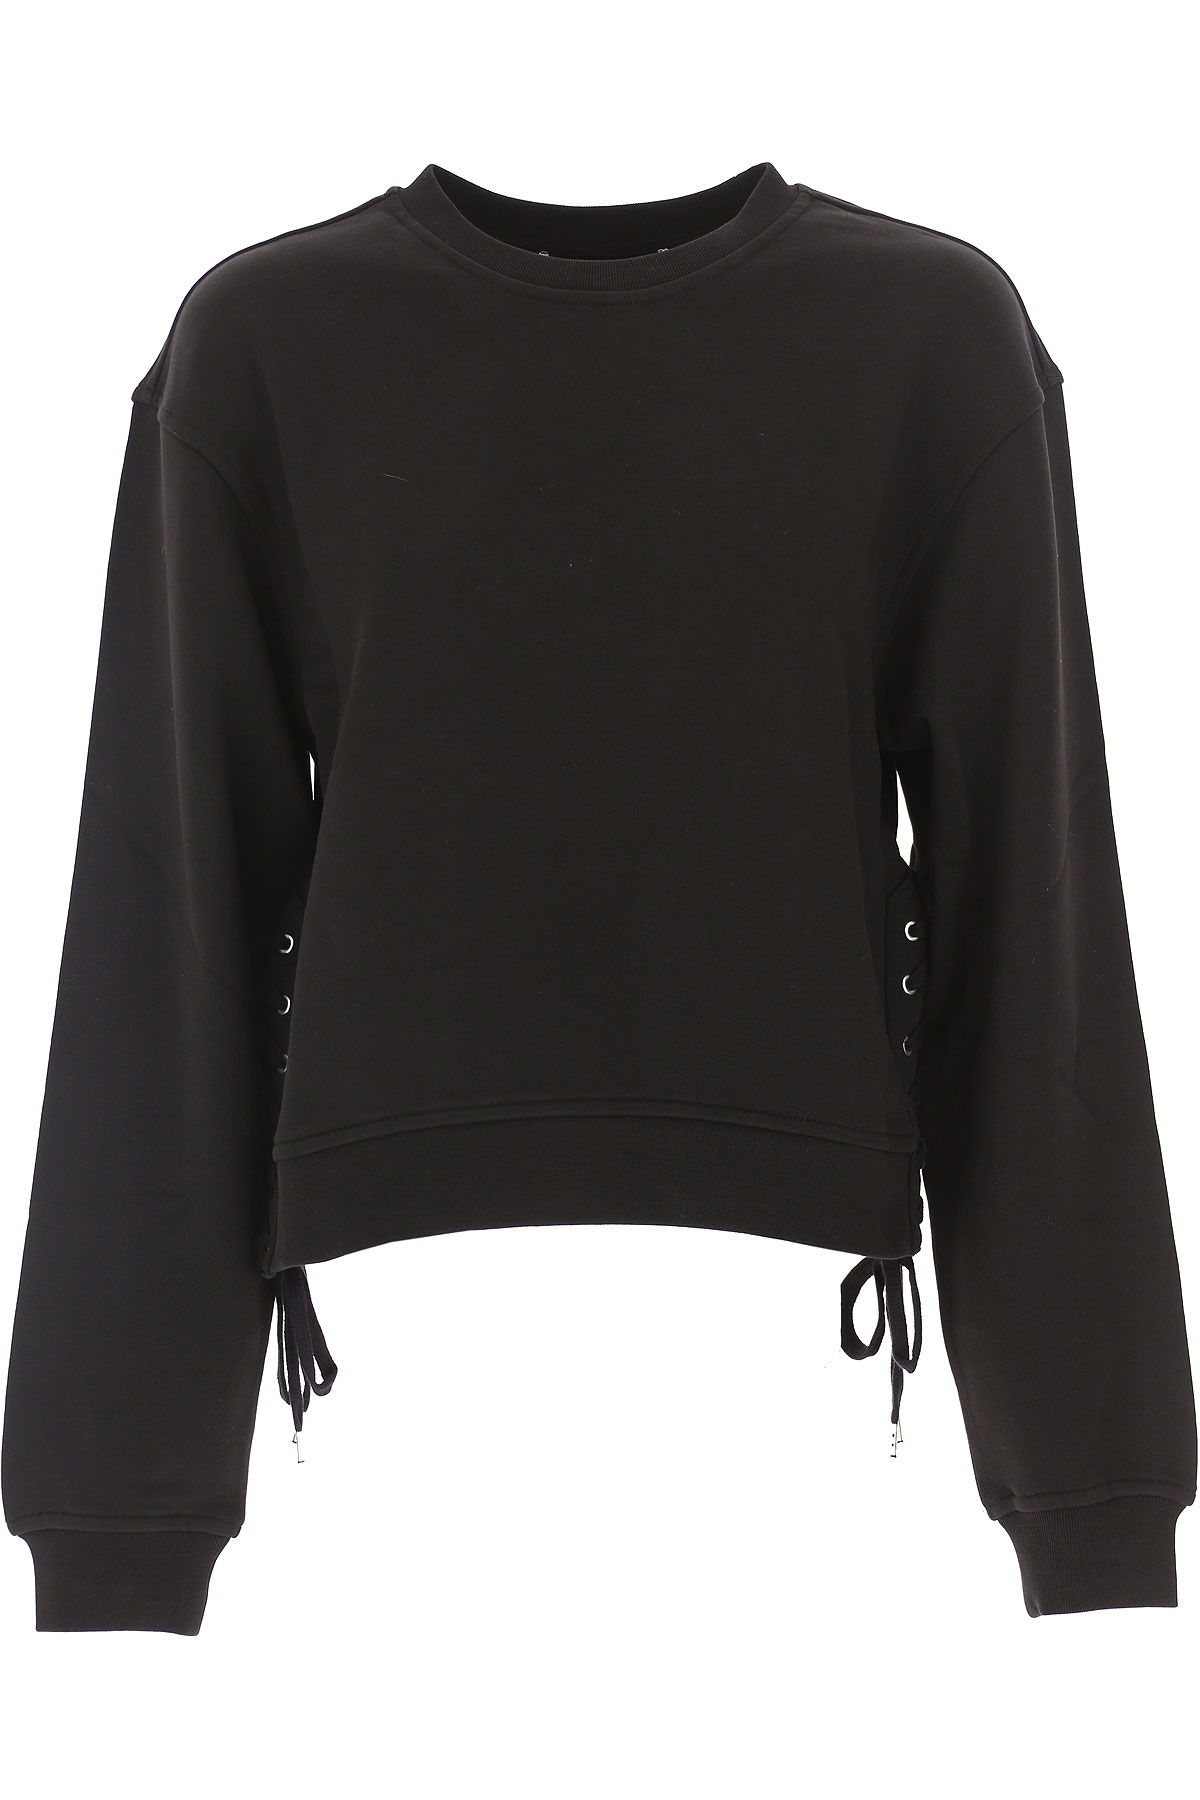 Image of Alexander McQueen McQ Sweatshirt for Women On Sale, Black, Cotton, 2017, 2 4 6